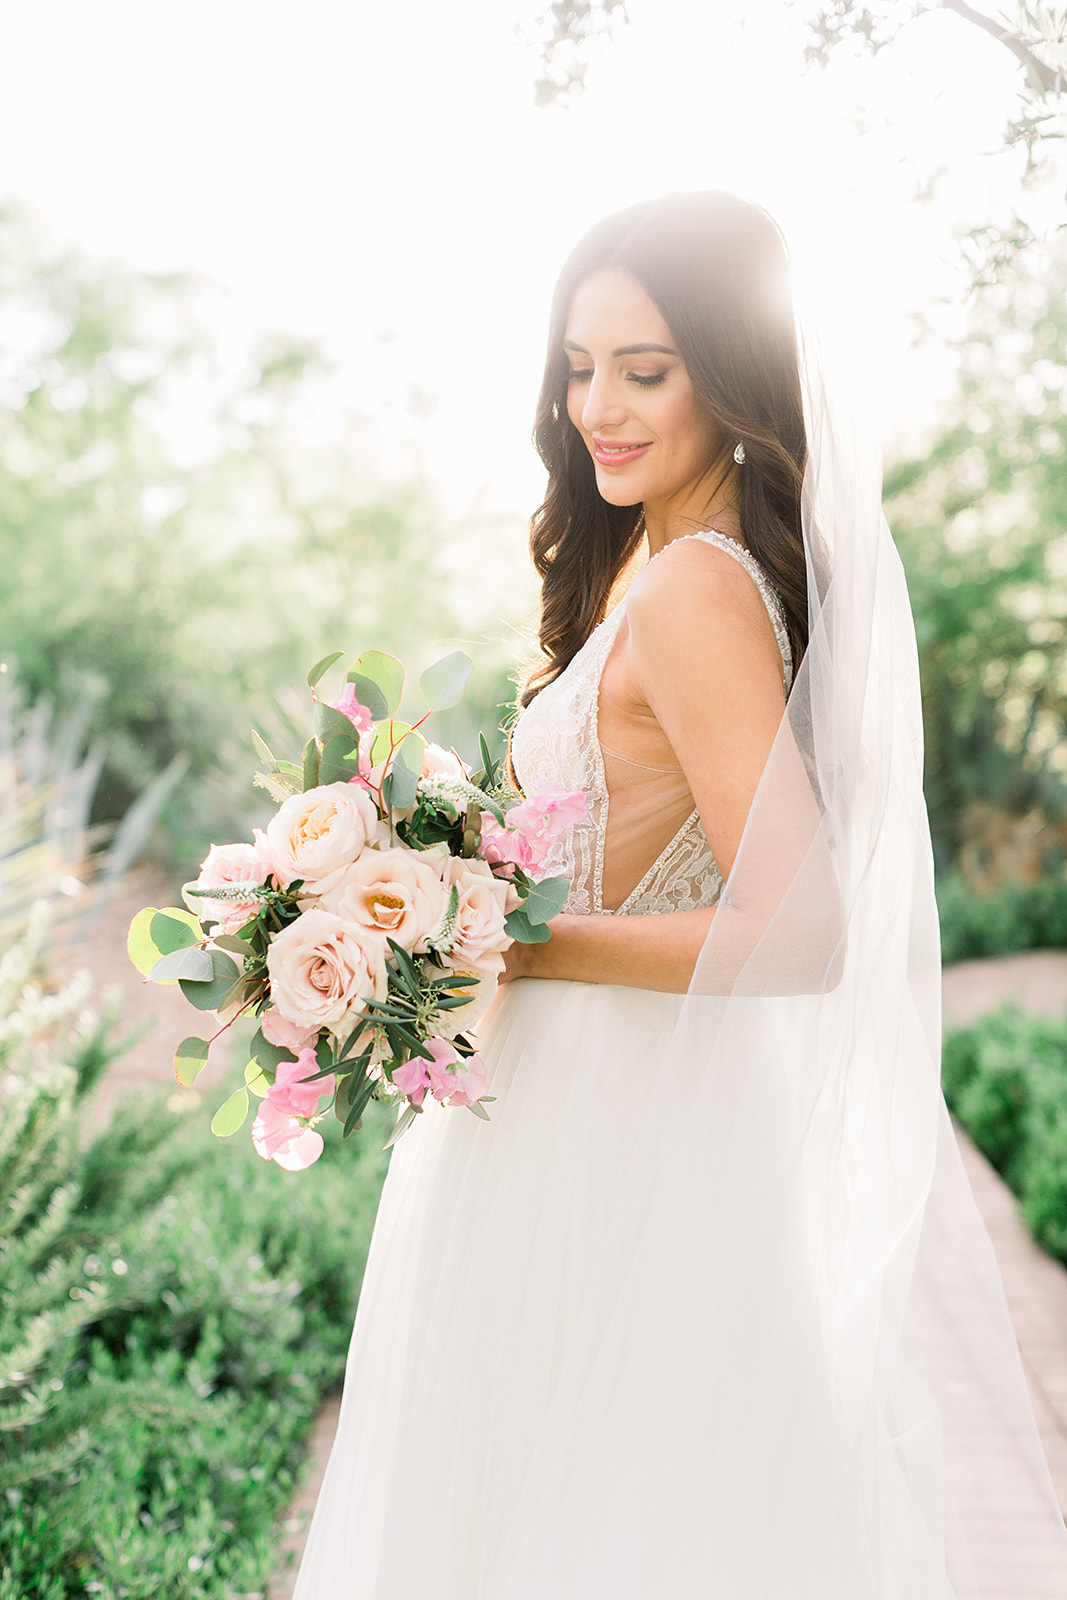 Phoenix-Scottsdale-Arizona-Wedding-Planner-Bride